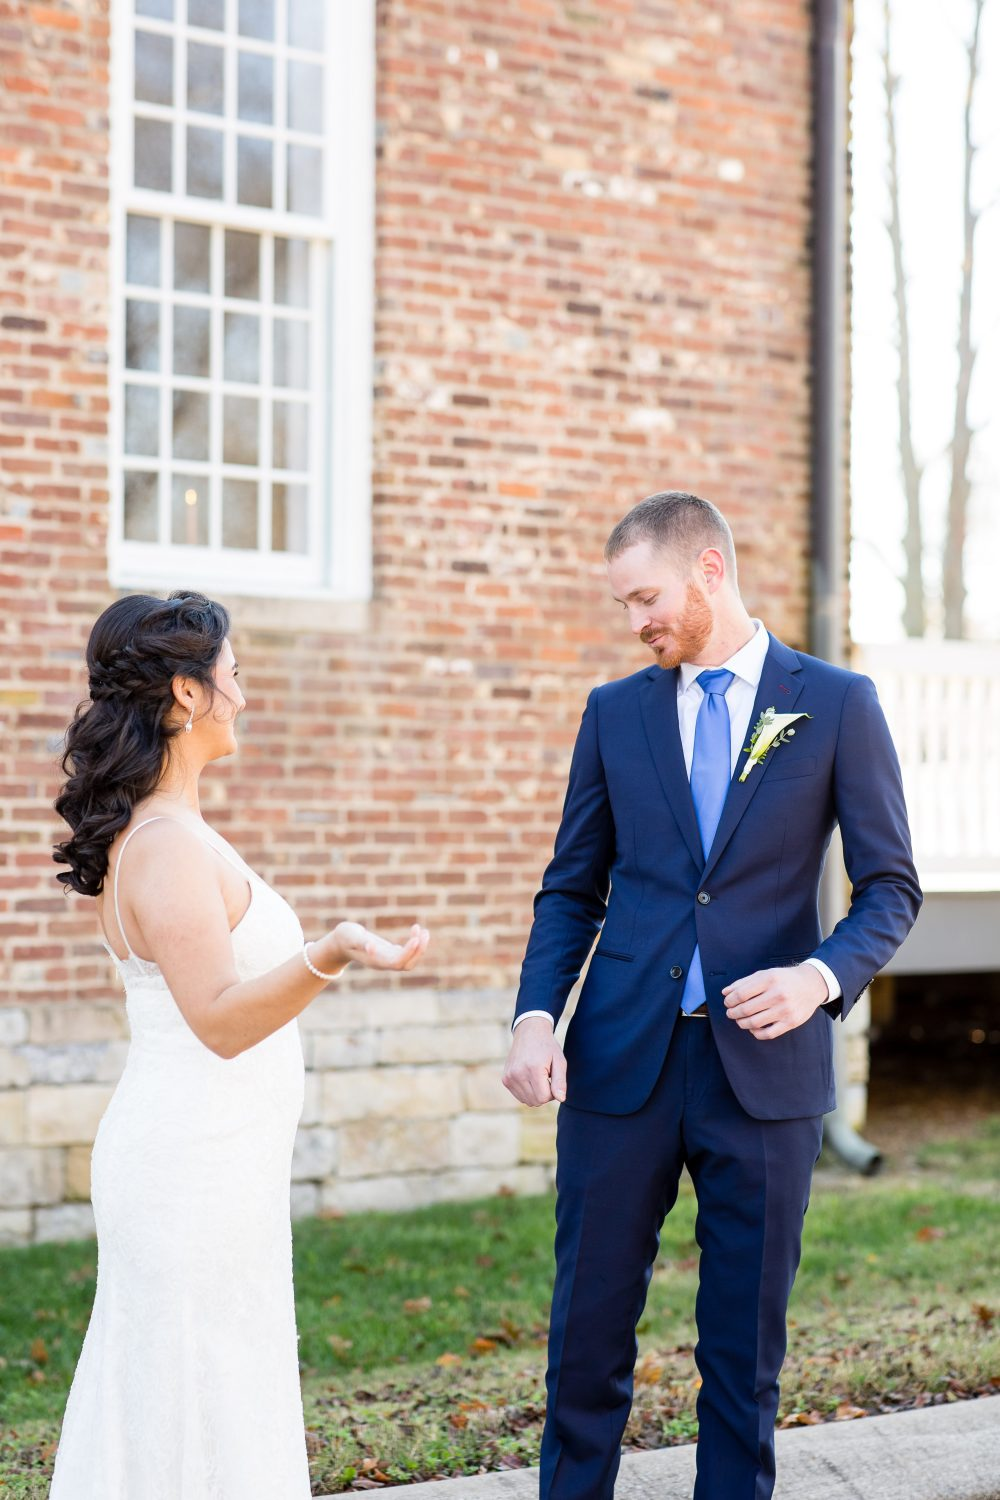 Bride and groom's first look | LeeHenry Events